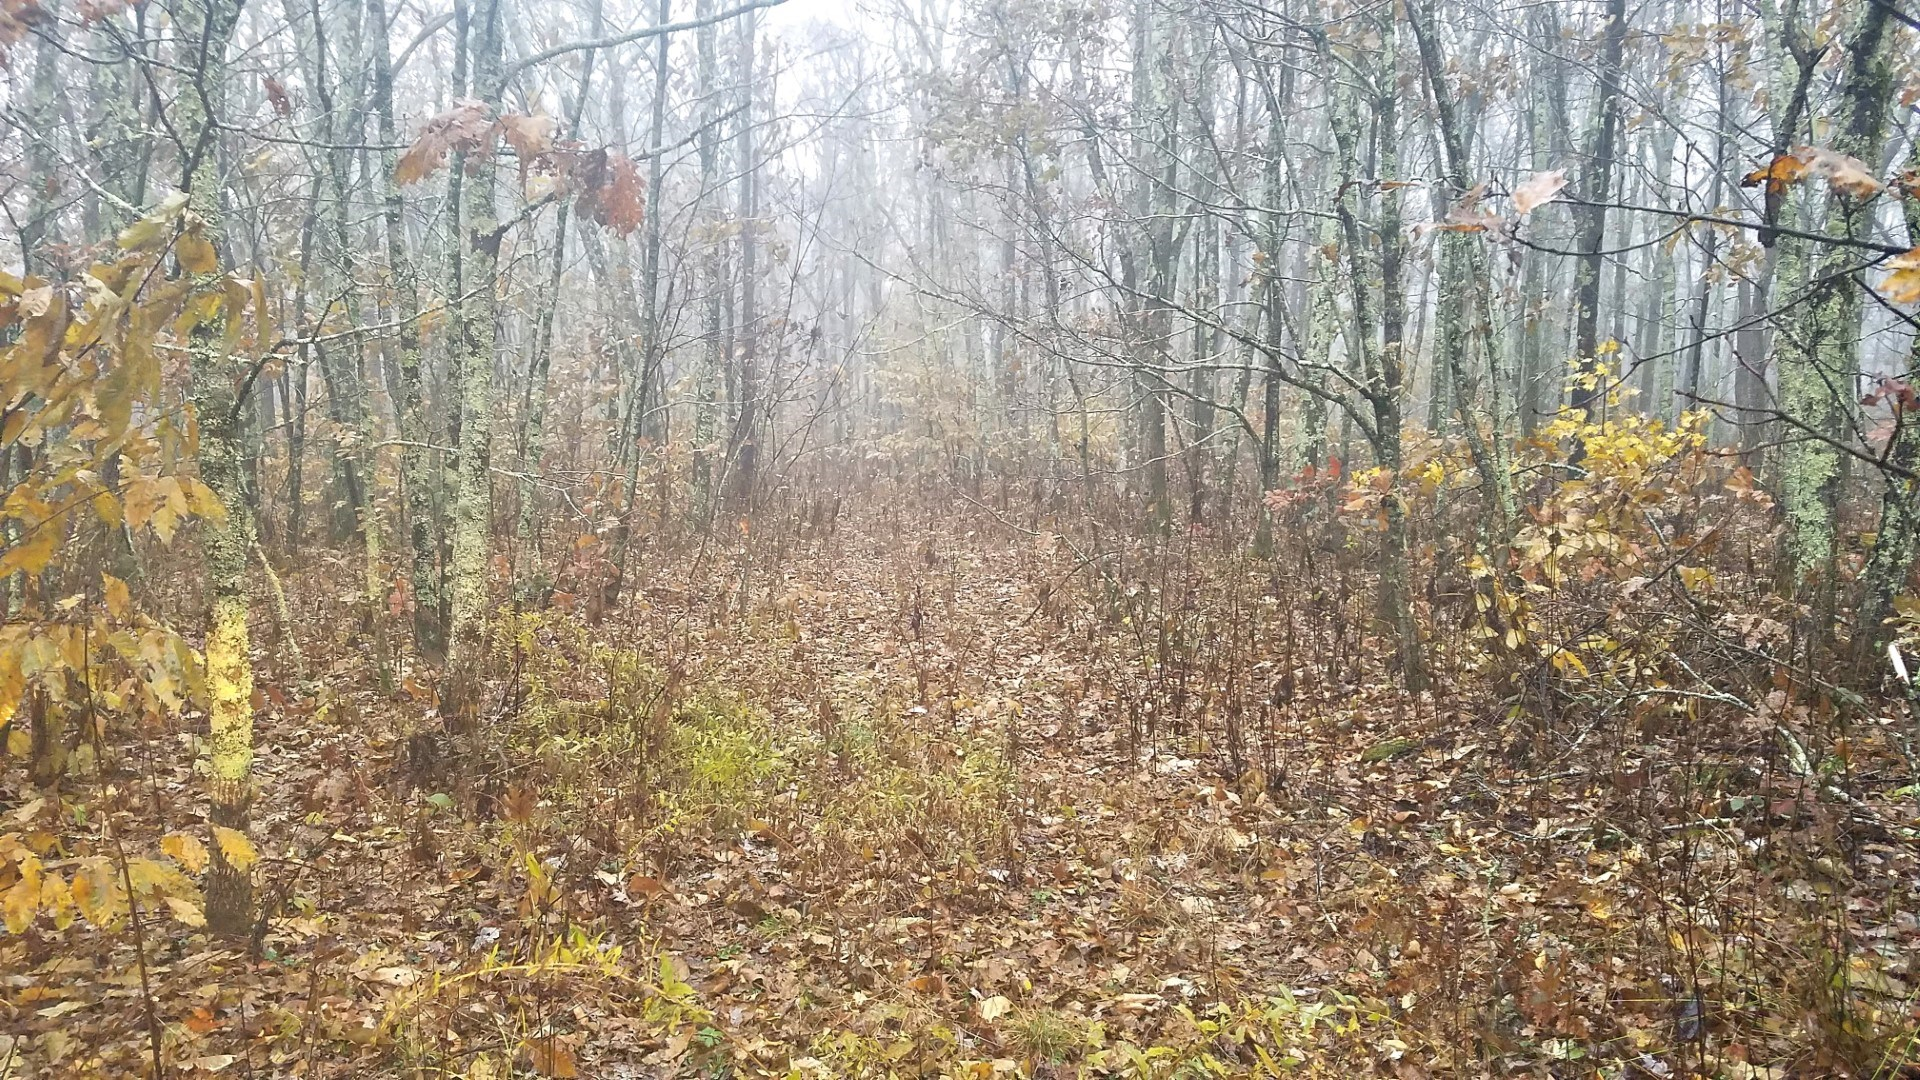 46 Acres Wooded Hunting Land Cove Creek, Bastian, VA